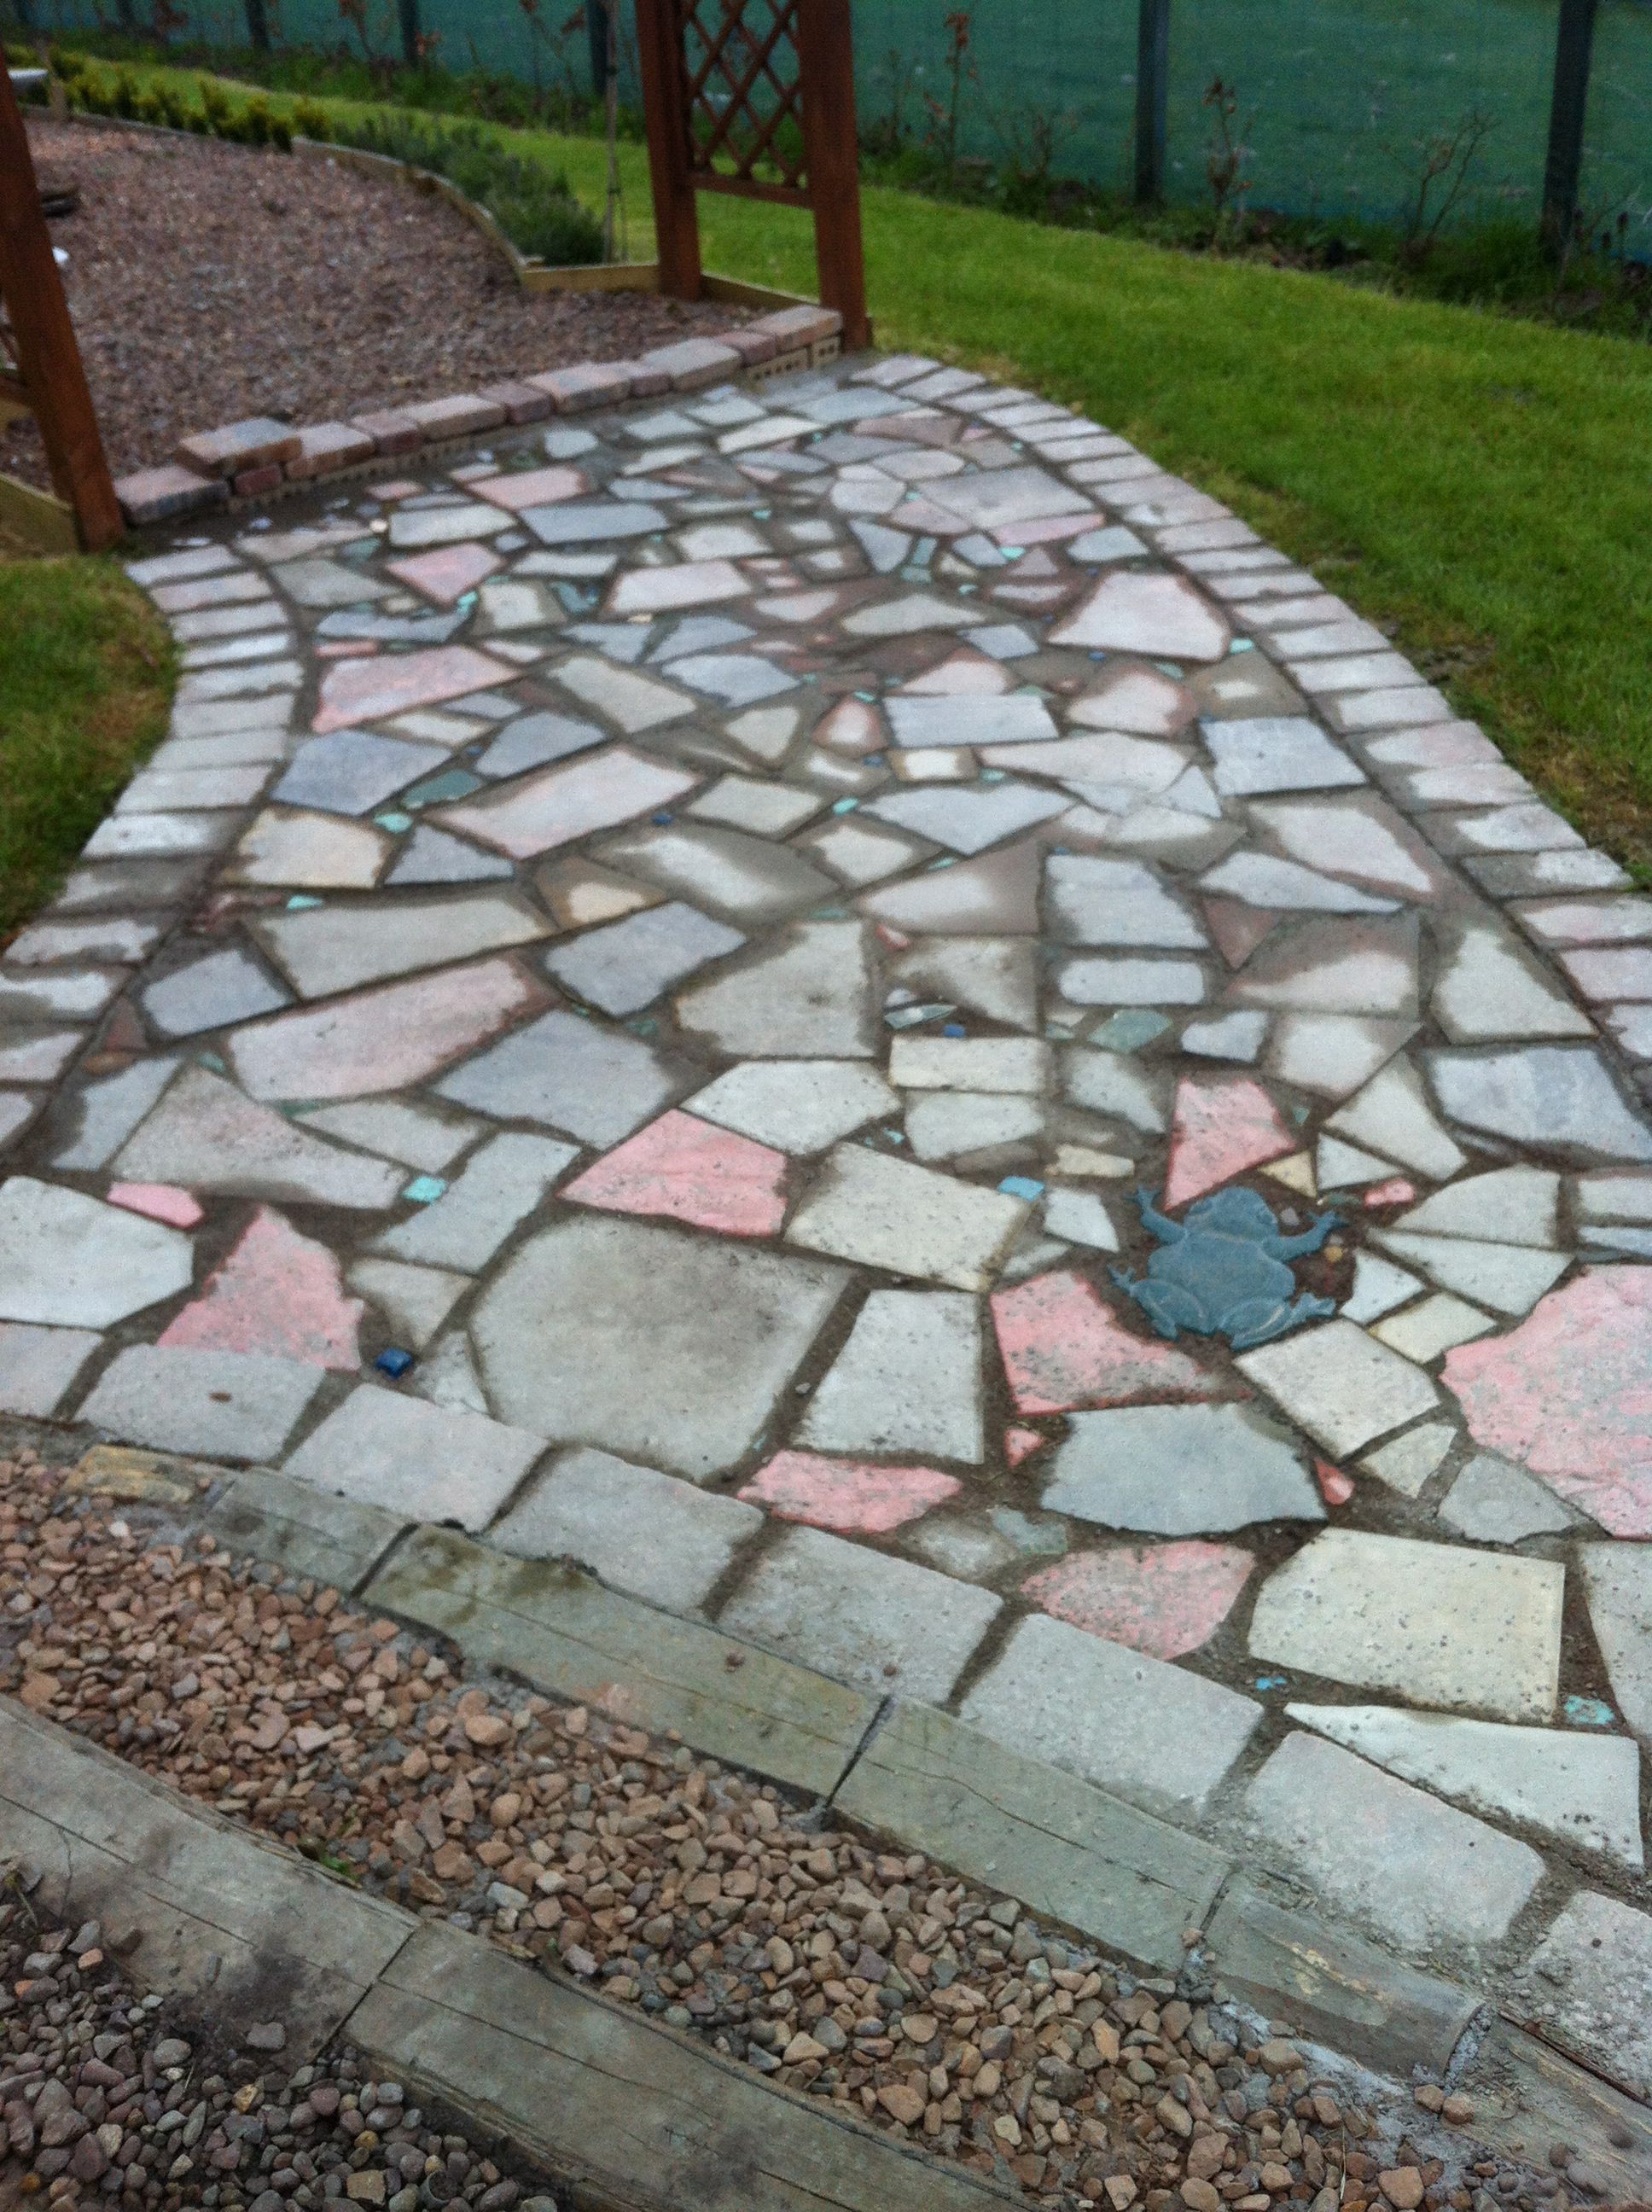 Managed To Finish Crazy Paving Unsigned Broken Slabs Small Broken Glass Bathroom Tiles Etc